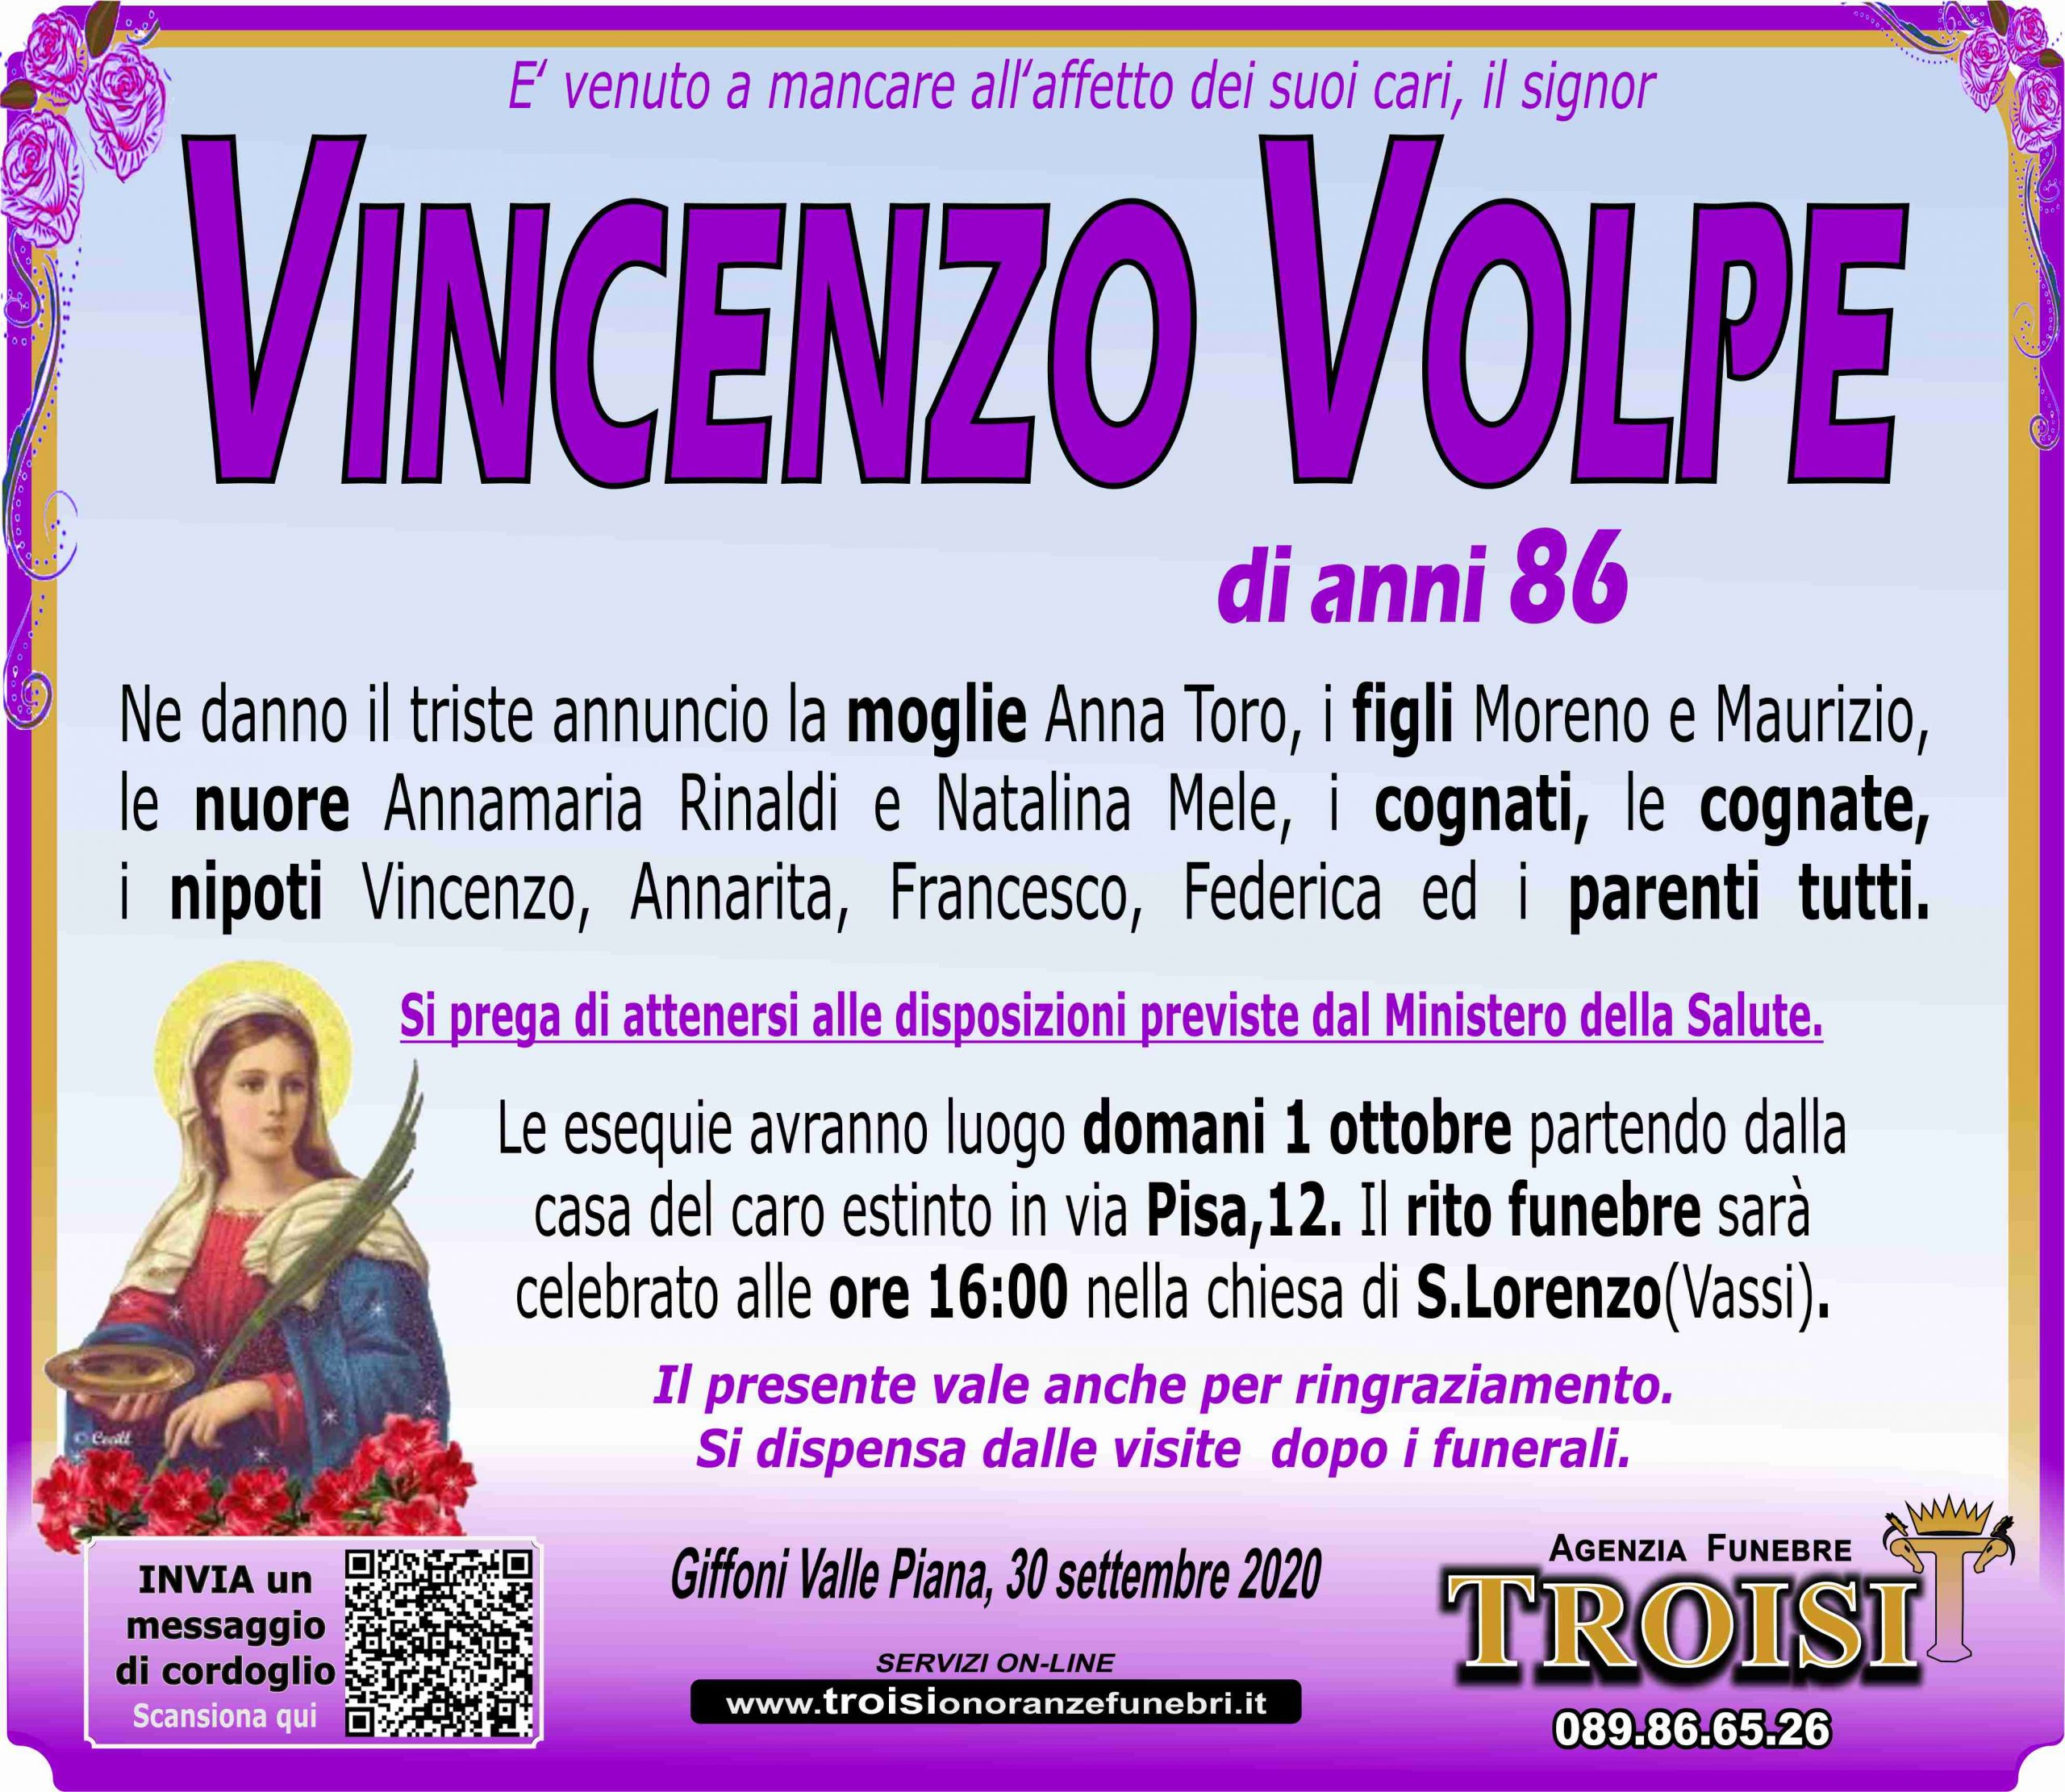 VINCENZO VOLPE